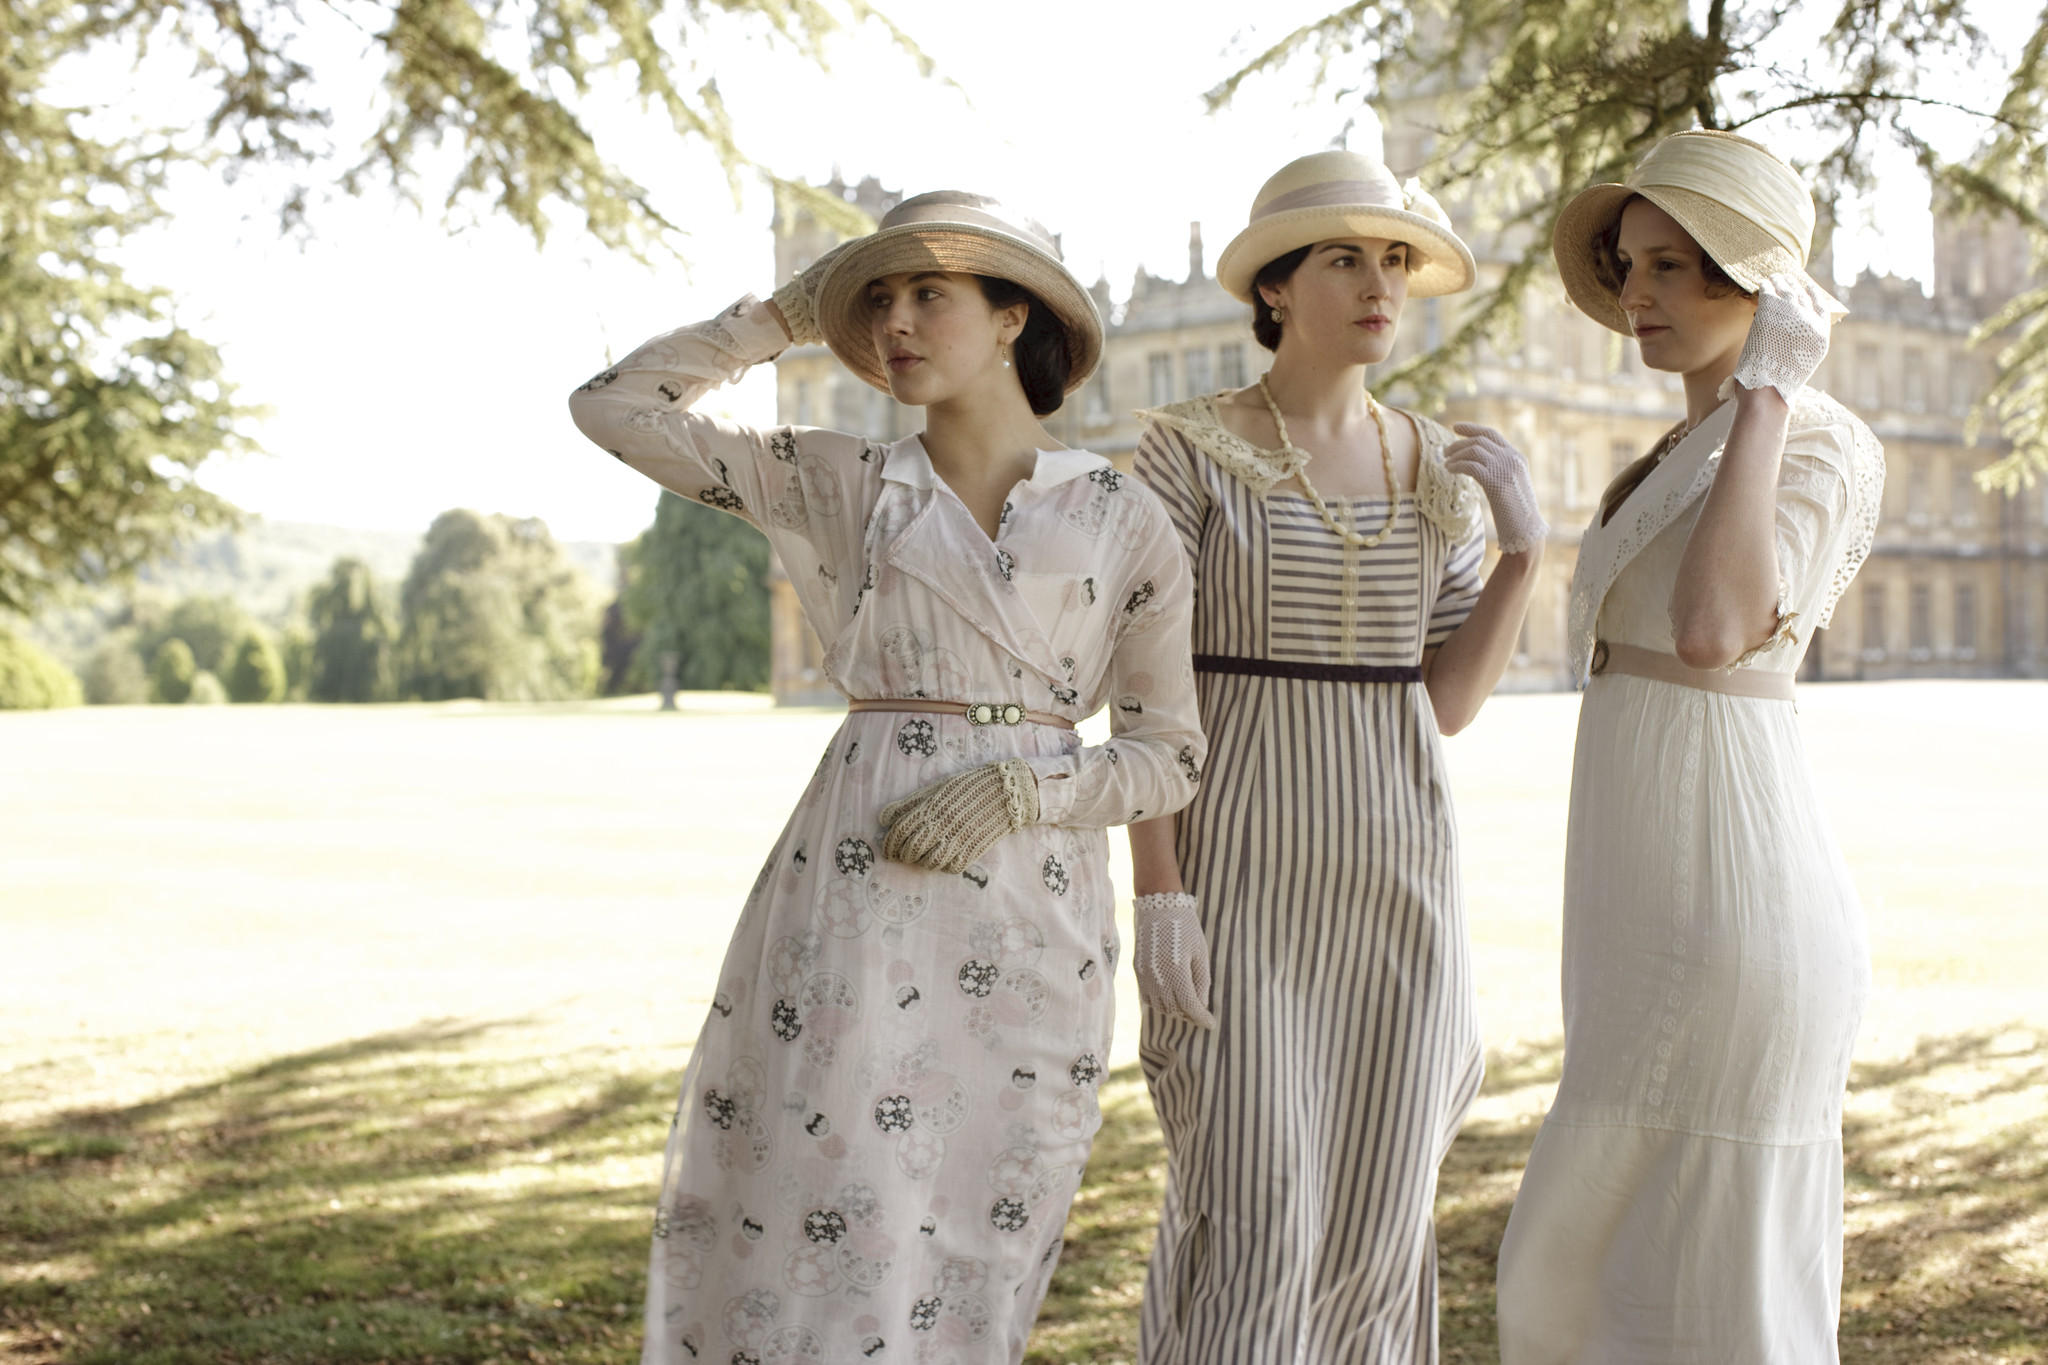 The three daughters of Downton Abbey